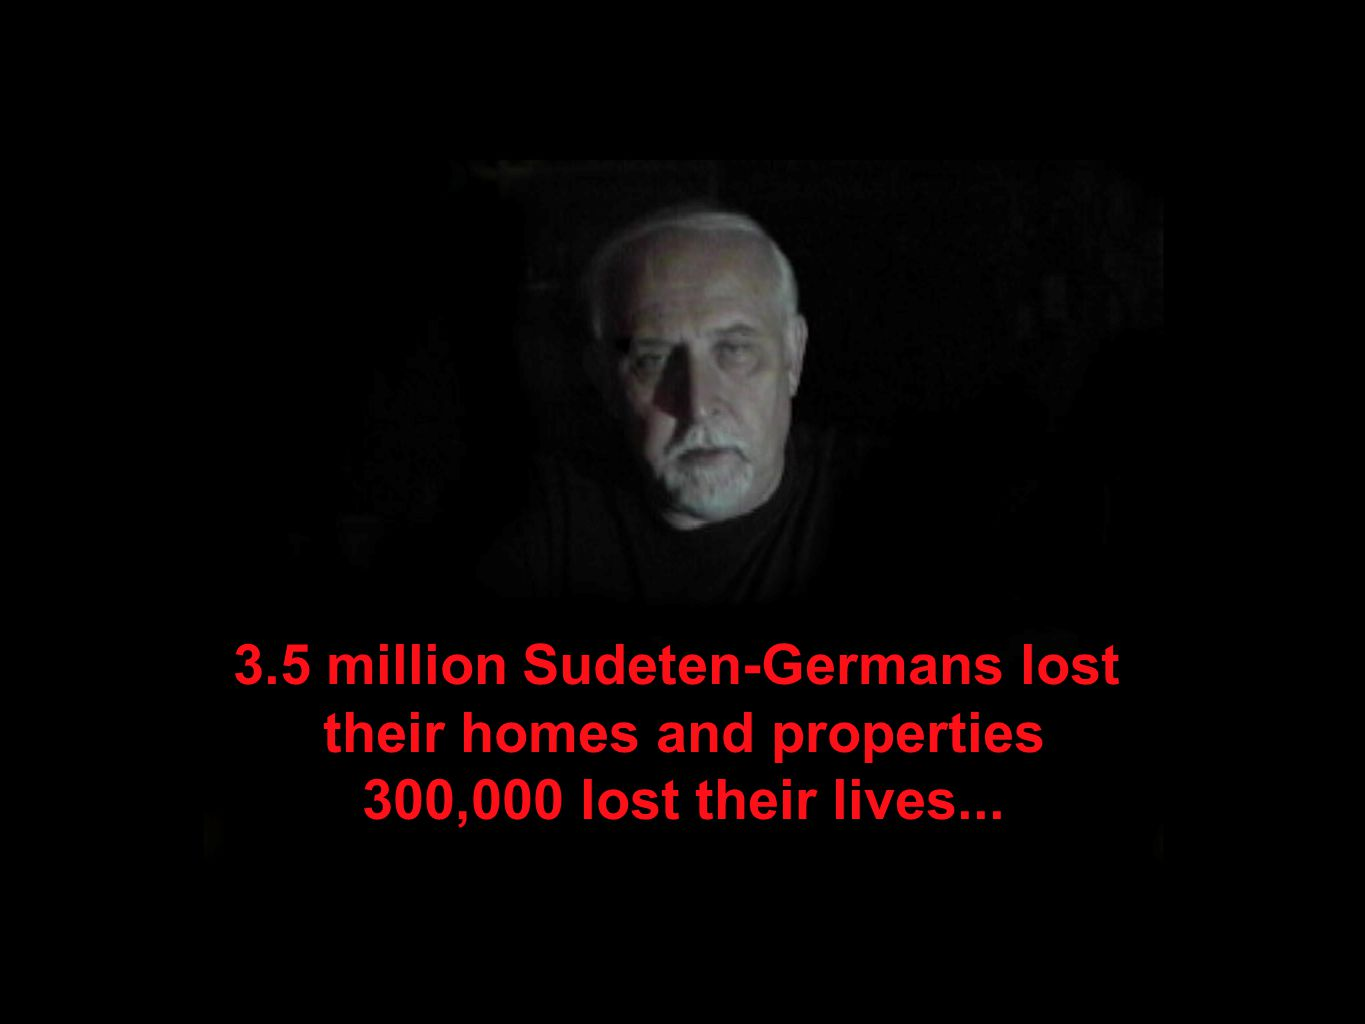 3.5 million Sudeten-Germans lost their homes and properties 300,000 lost their lives...